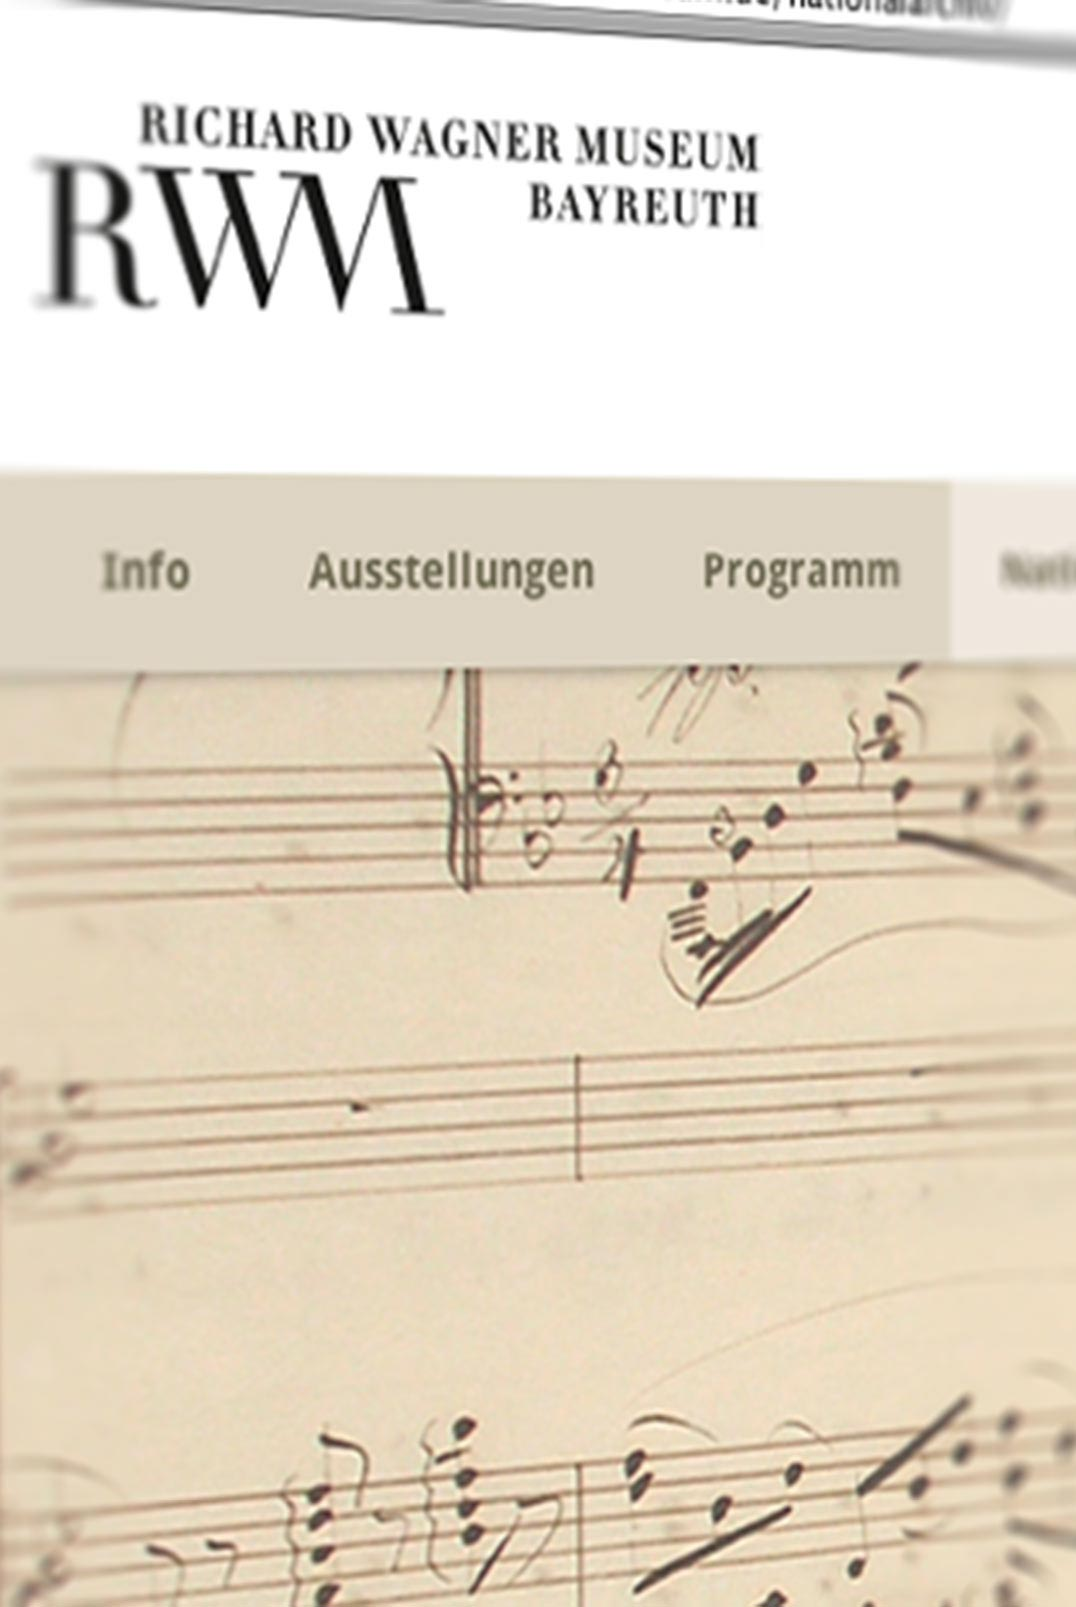 Website Richard Wagner Museum